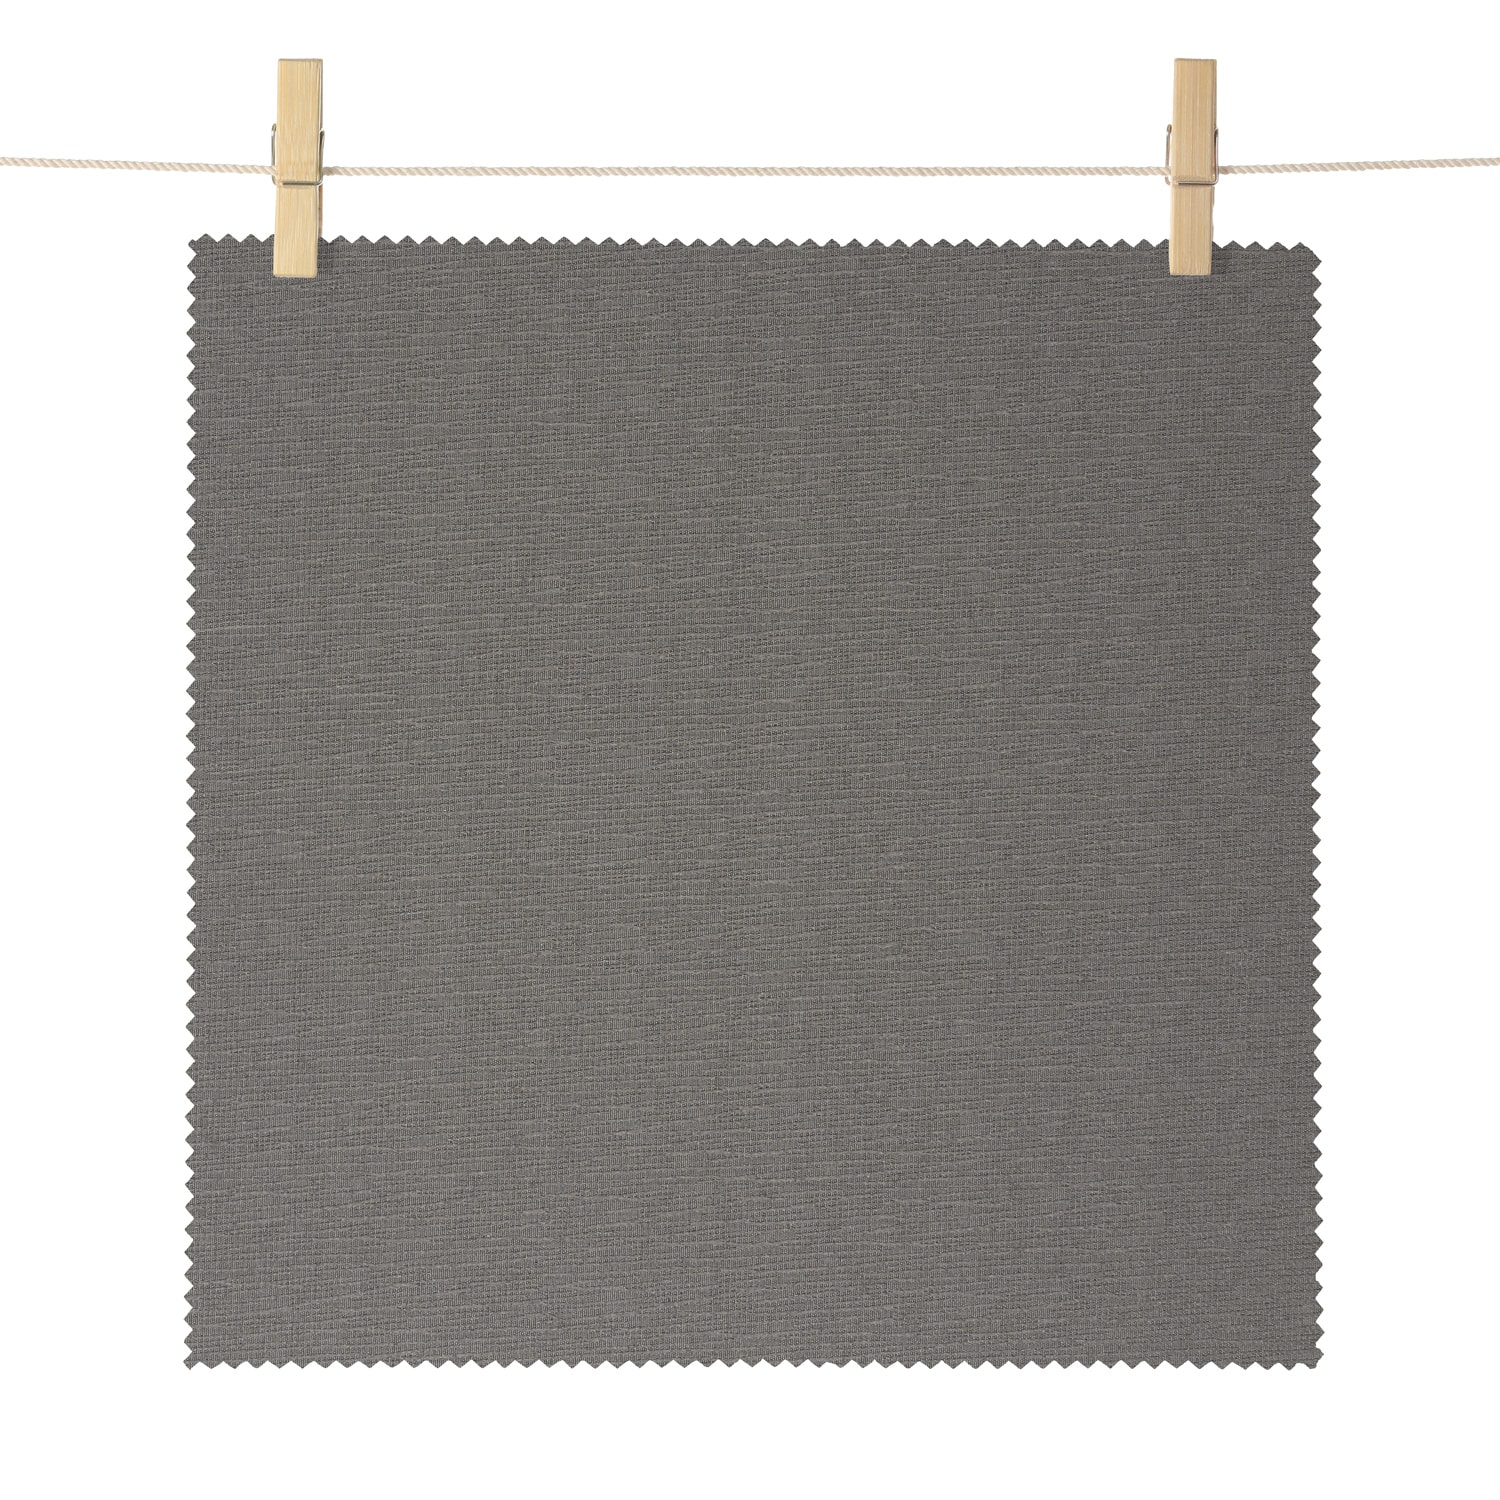 Dunsmuir Grey Boucle Textured Blackout Roller Shade Swatch